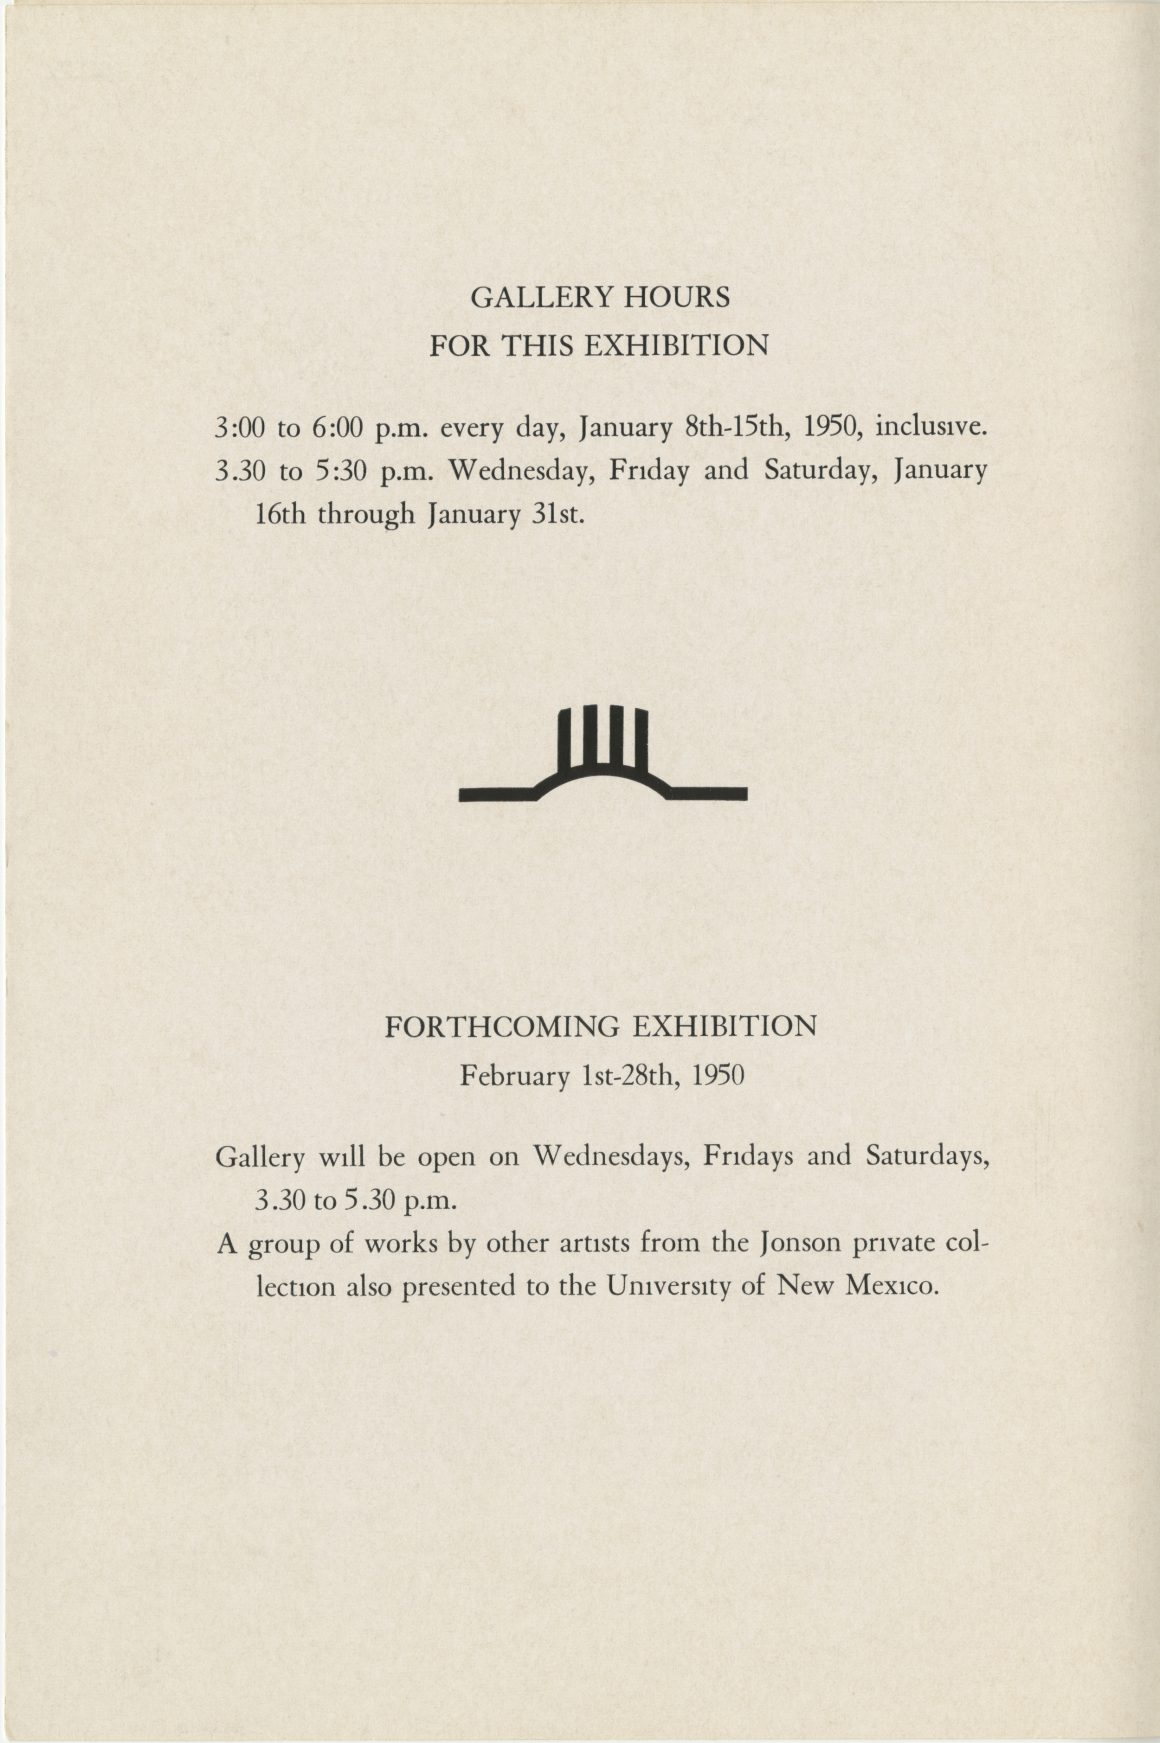 Exhibition brochure for First Exhibition Jonson Gallery at the University of New Mexico, February 1st - 28th, 1950.